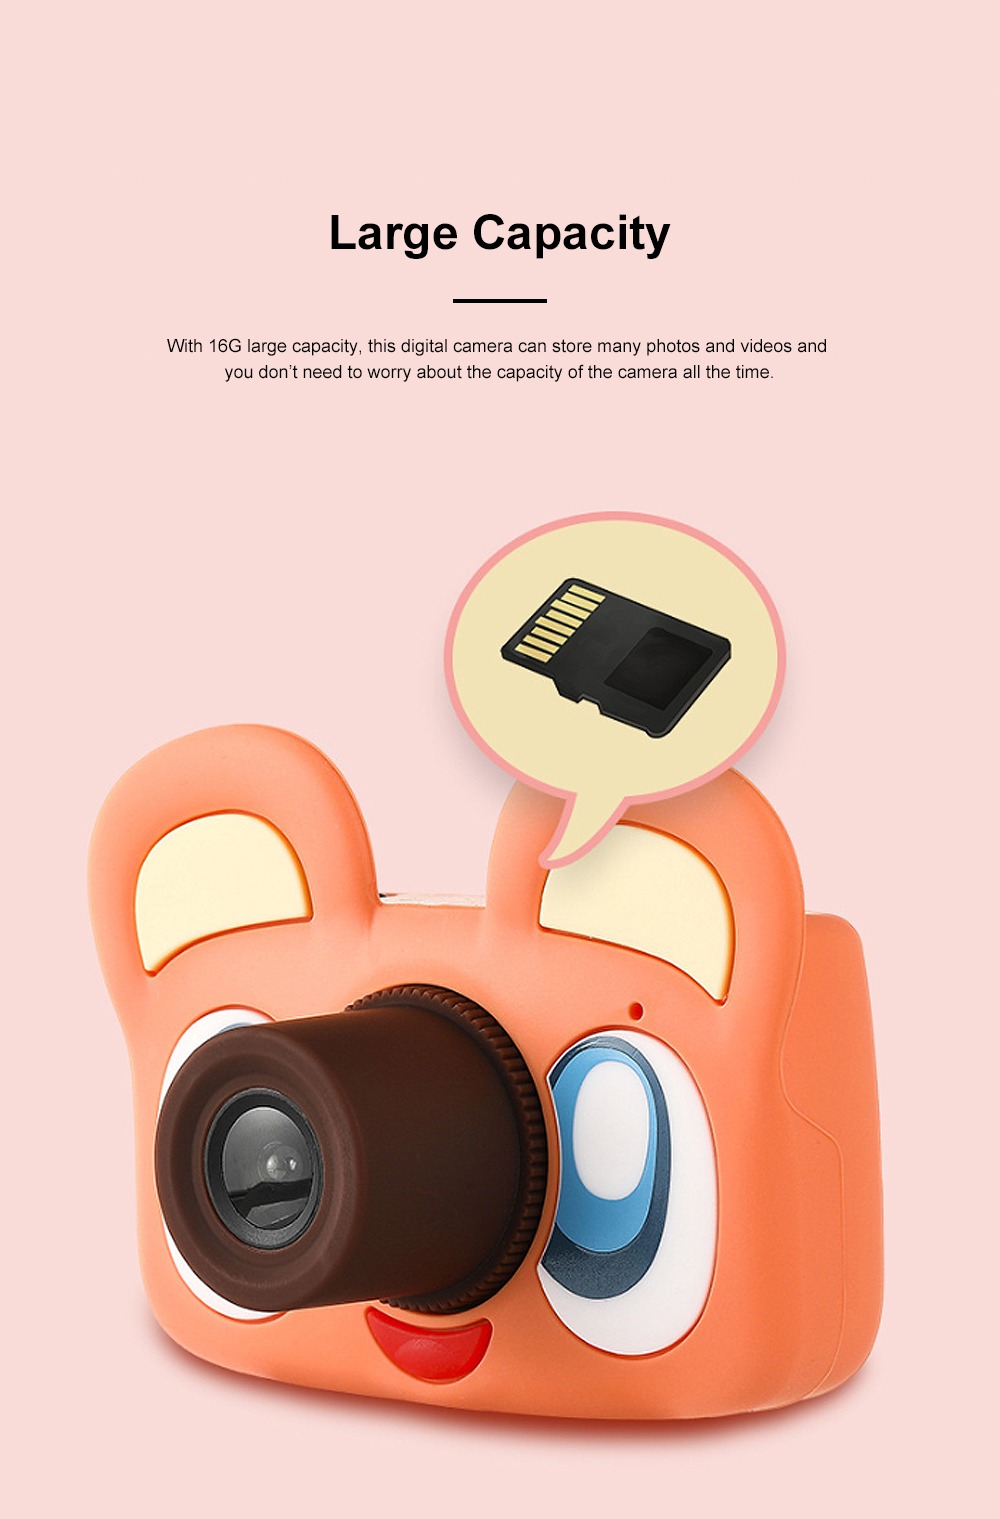 Cute Animal Model Mini Digital Camera for Children WIth Breaking-proof Silicone Shell 16G 1200W HD Pixel 2.0 inch Video Recorder Birthday Present 4